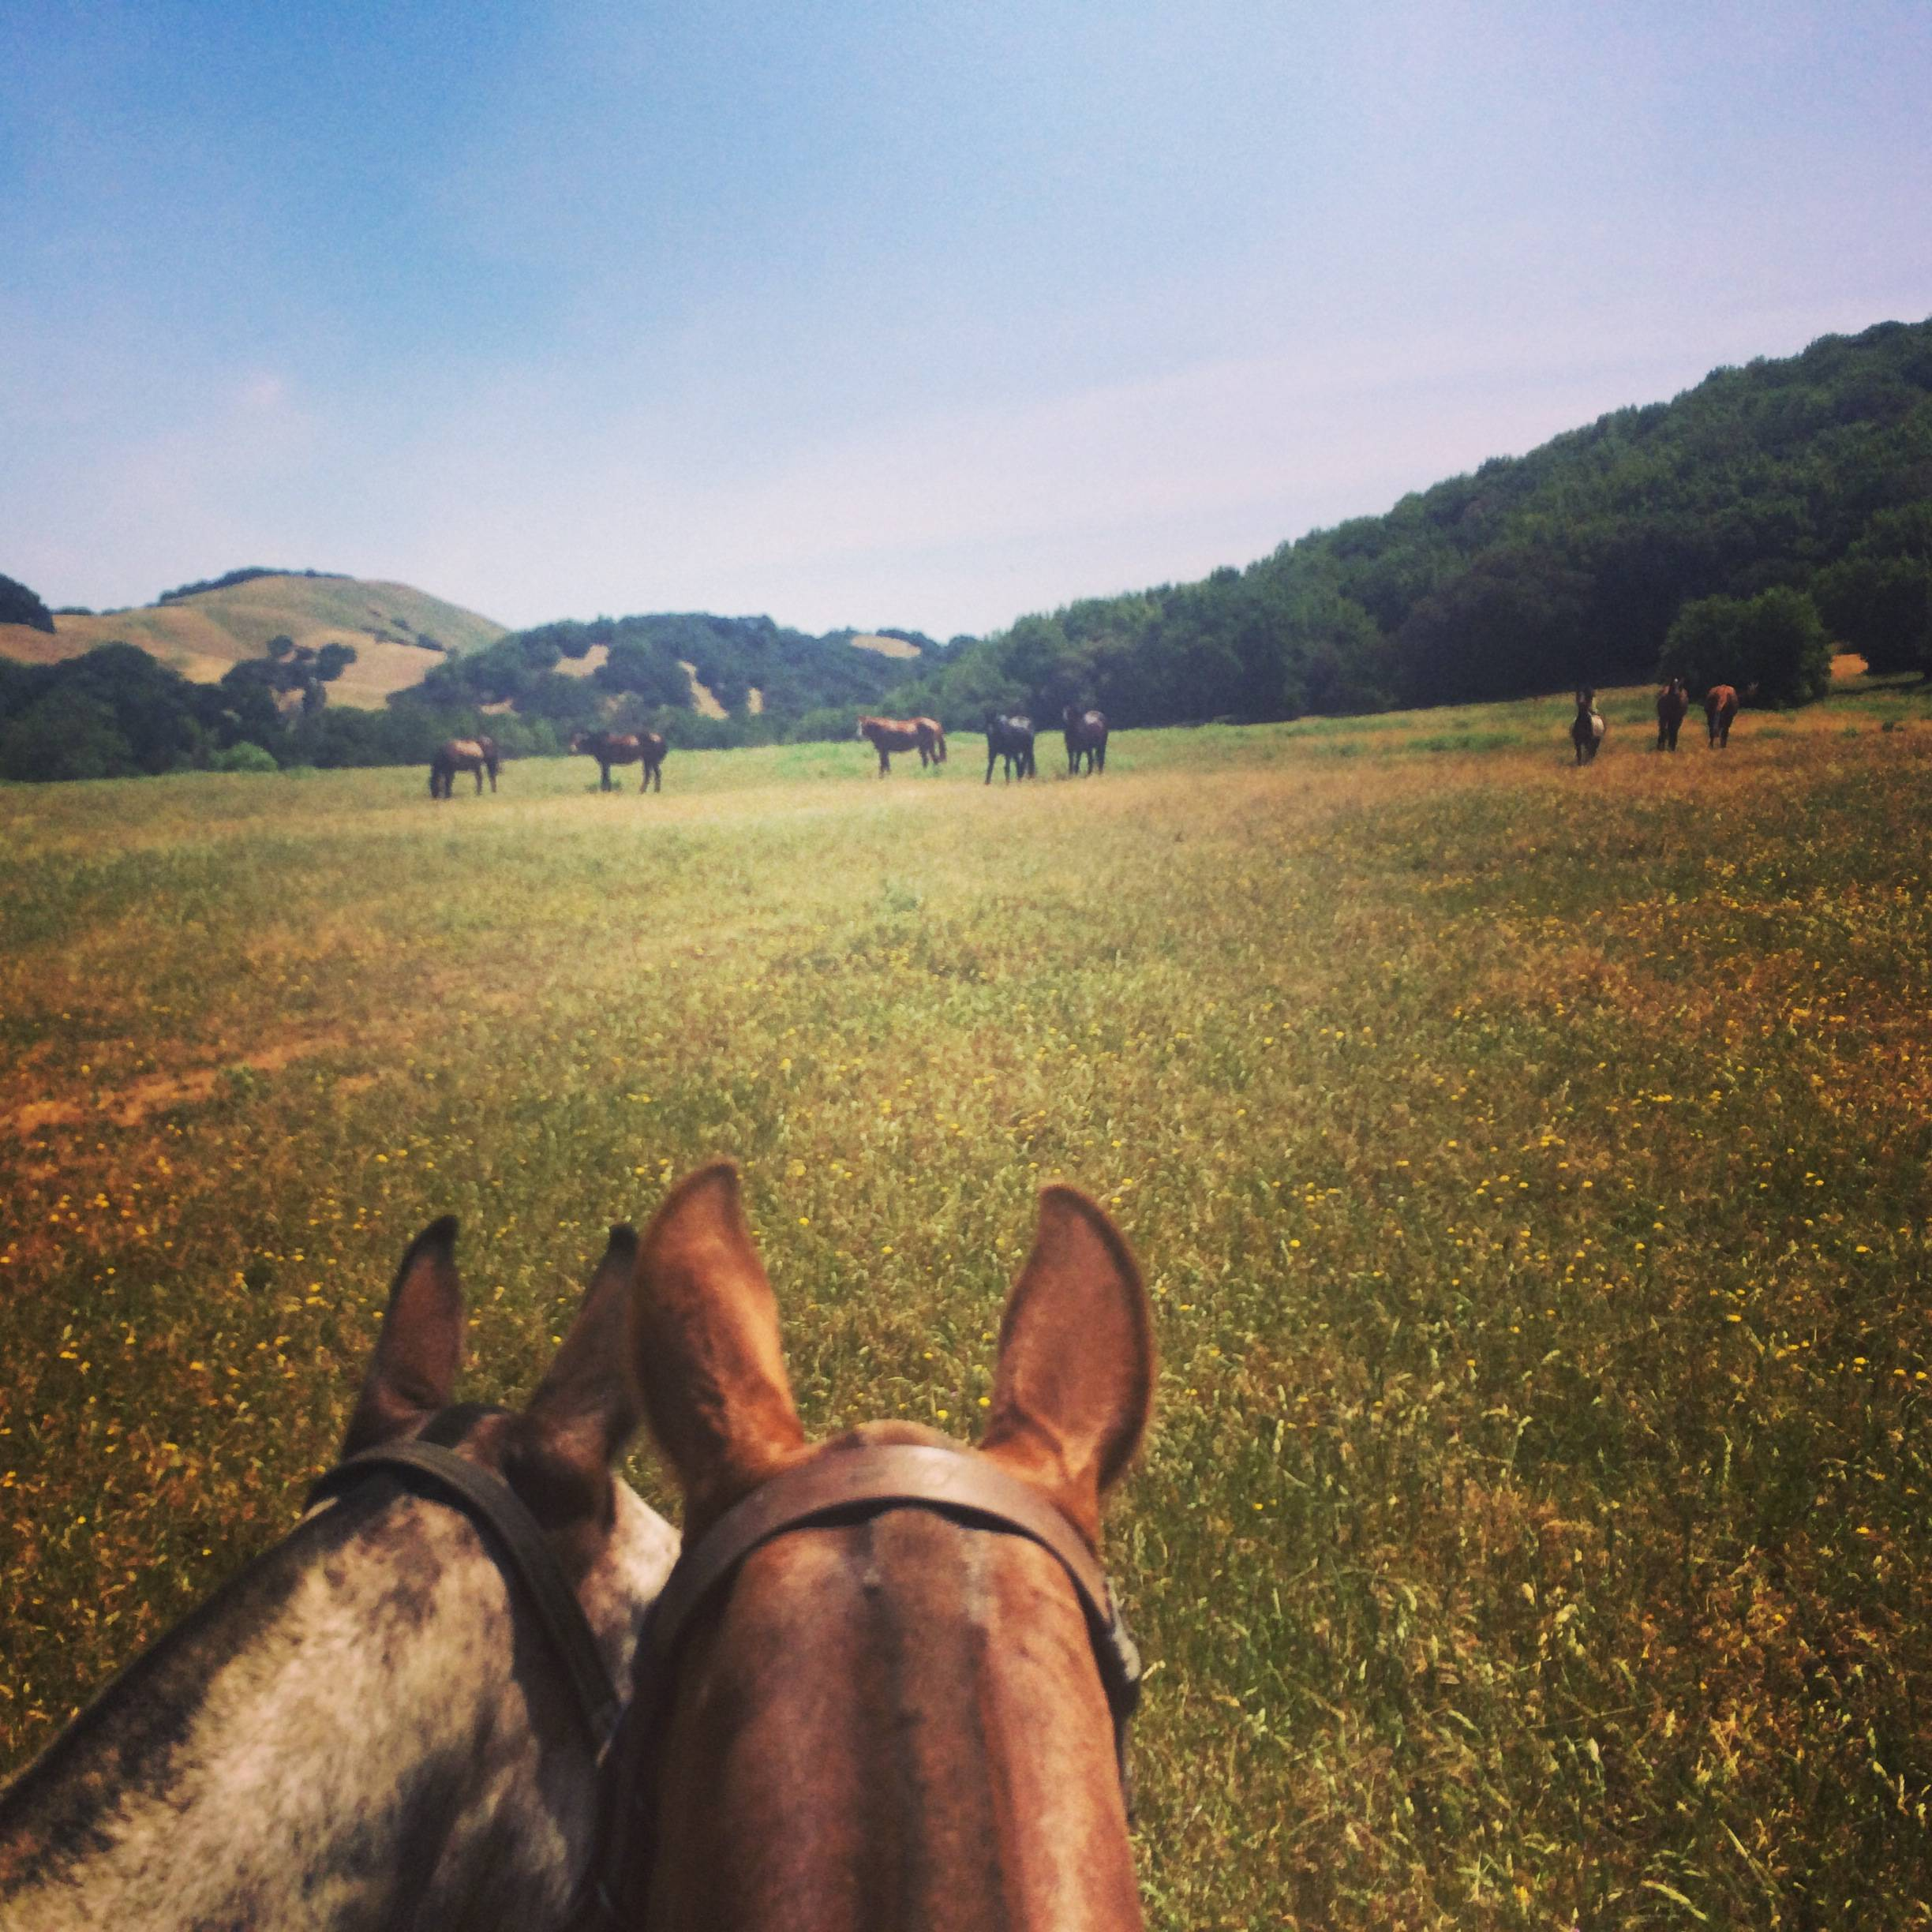 A view on horseback.